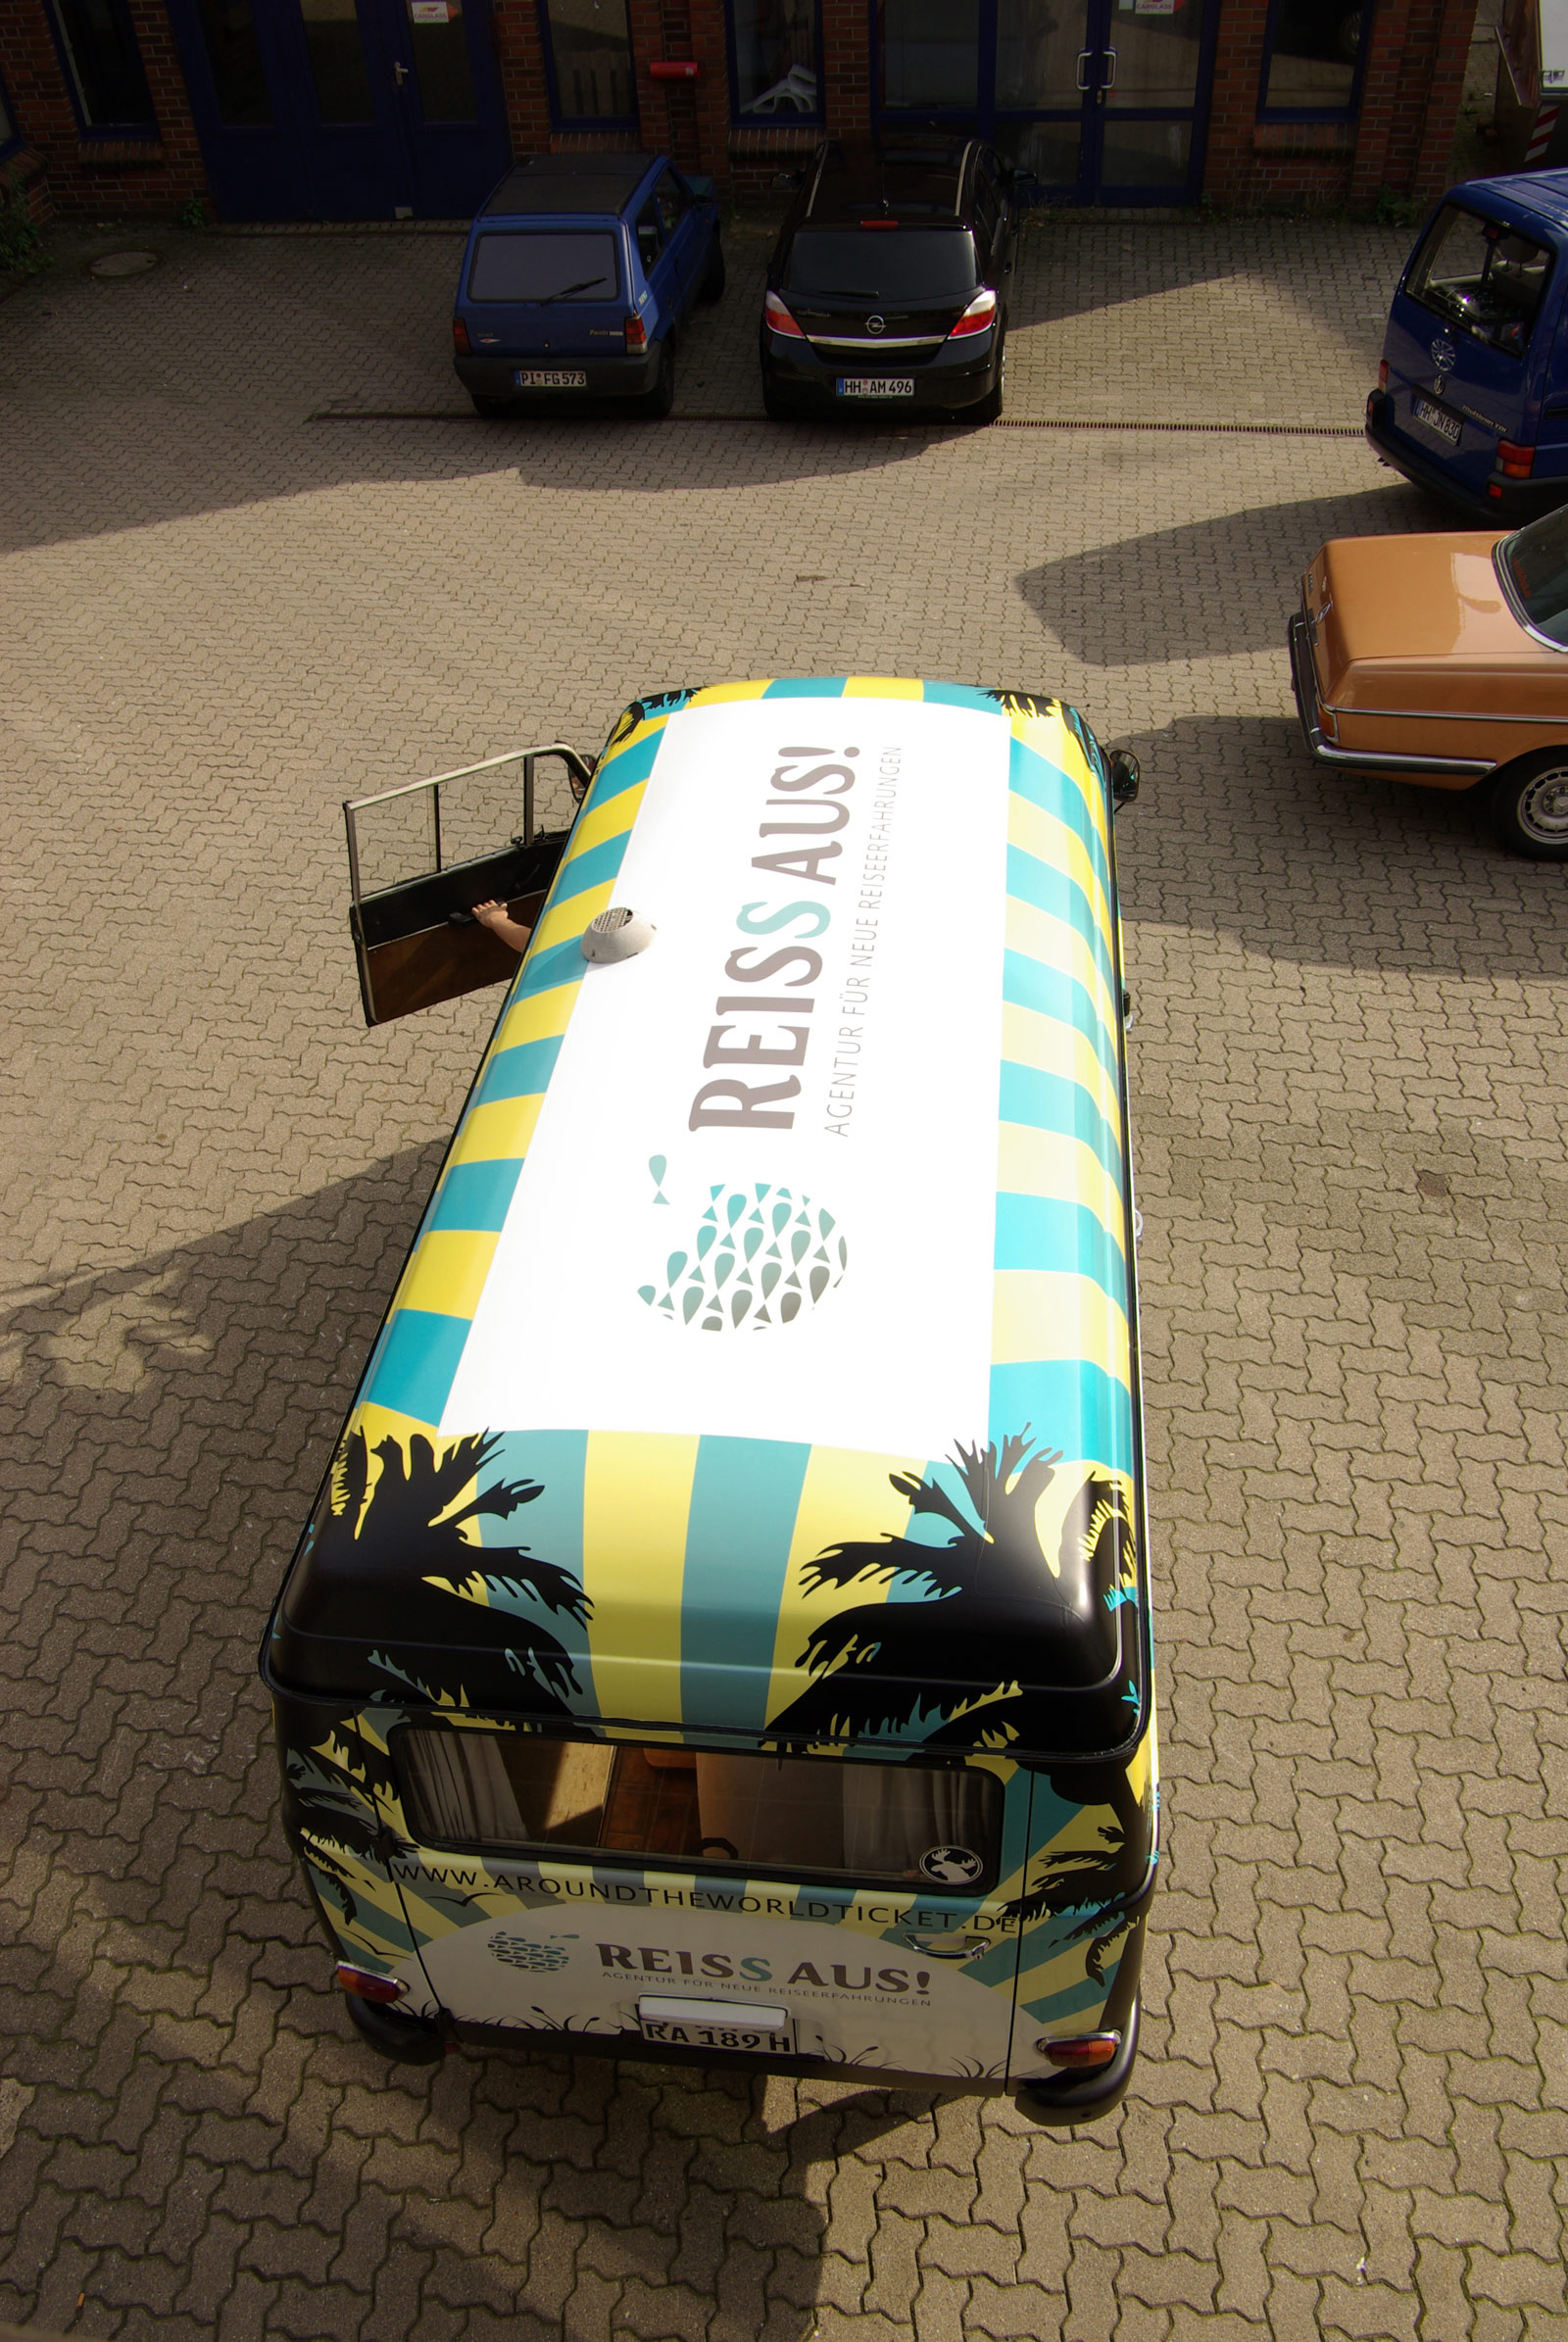 HANOMAG_3D_DIGITALDRUCK_REISS_AUS_15